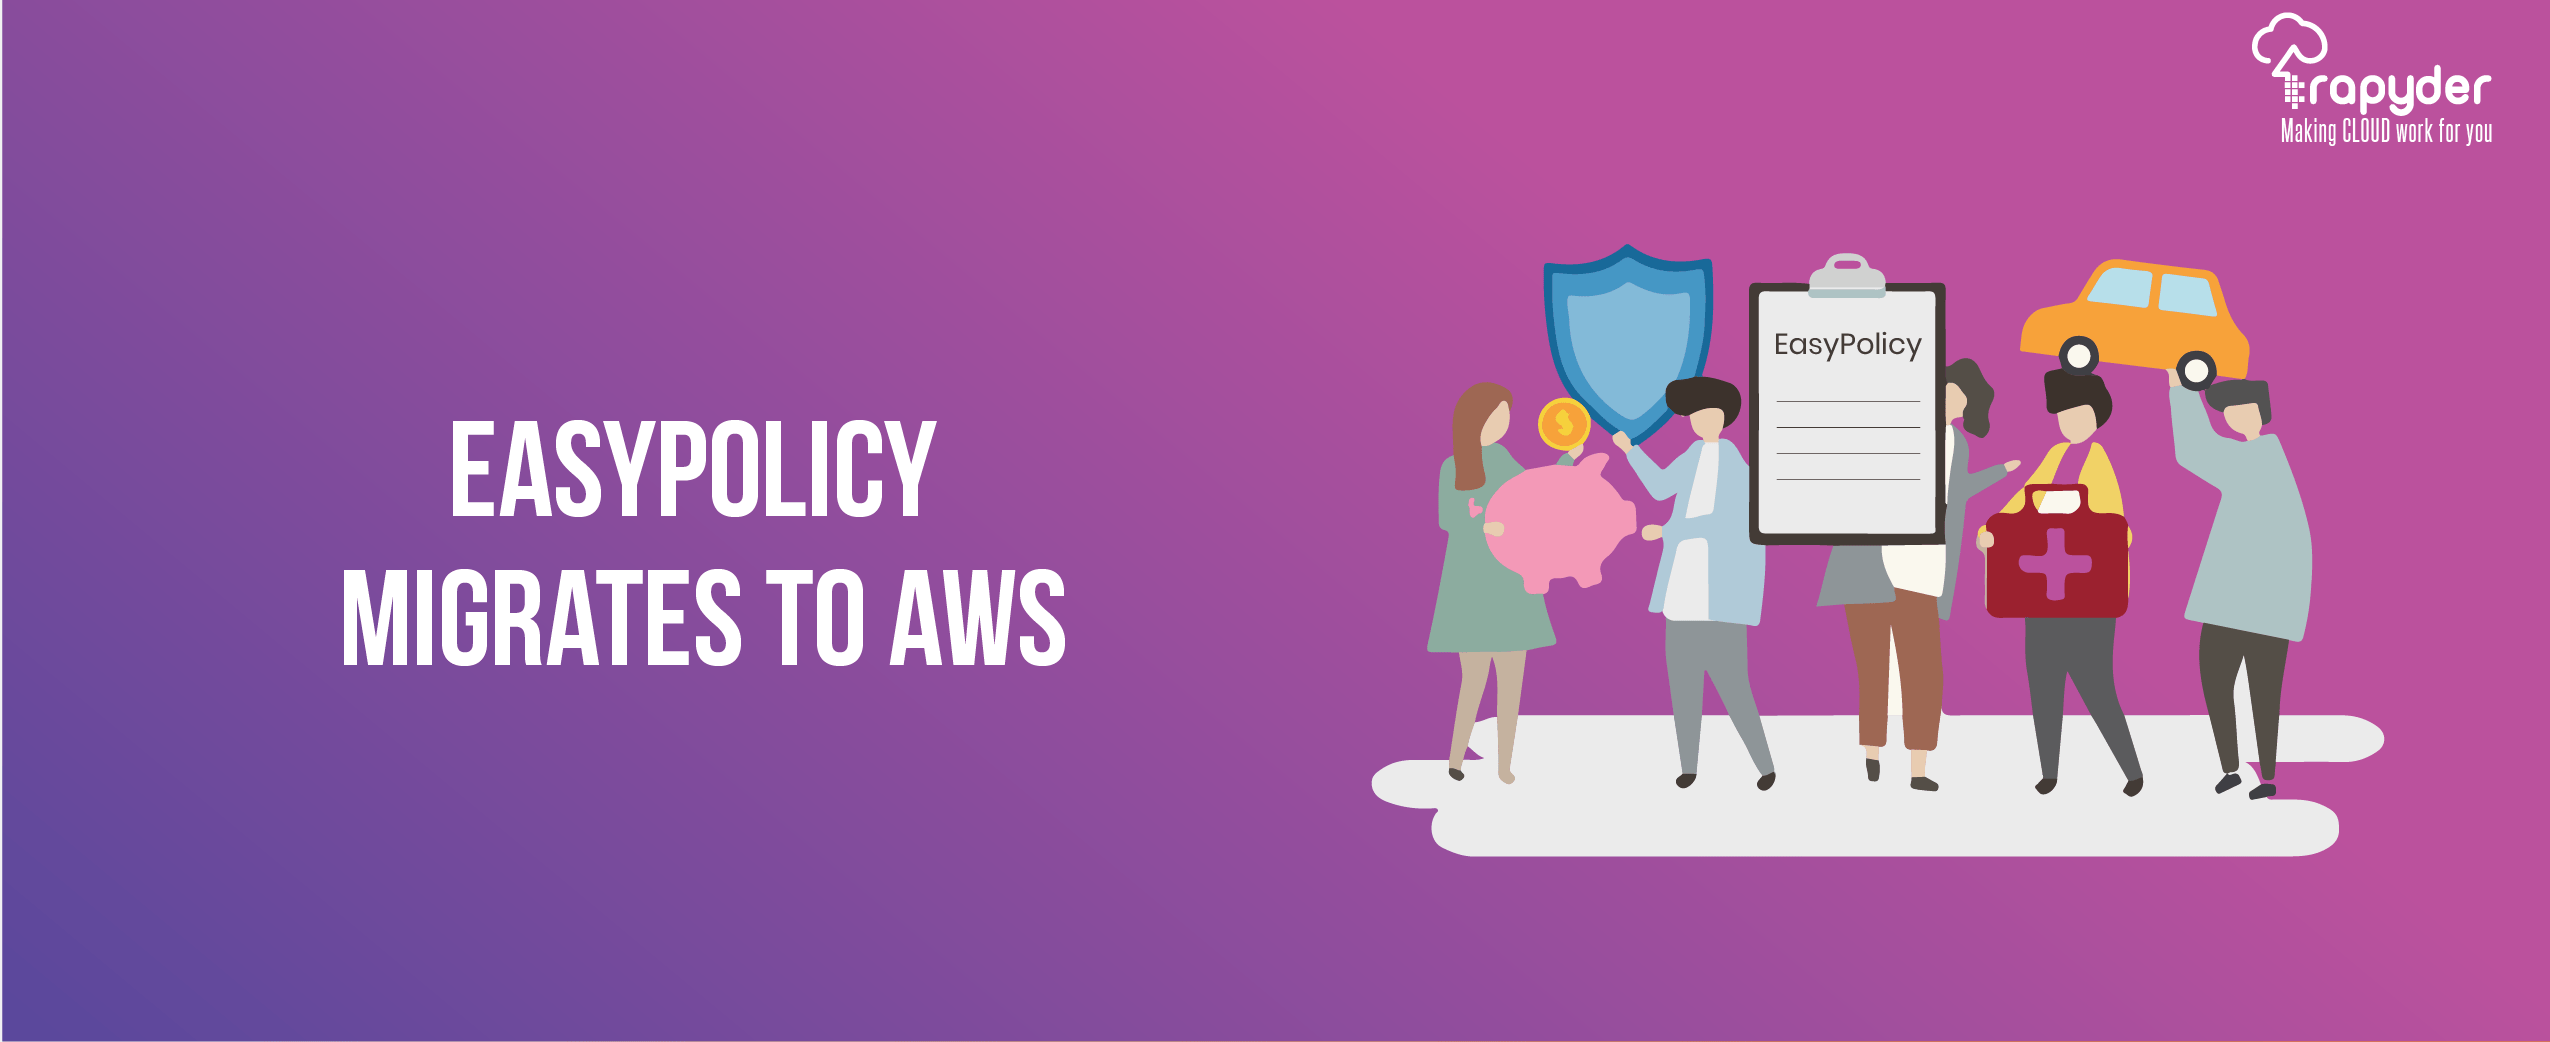 InsurTech AWS Case Study : Easypolicy.com migrates to AWS Cloud